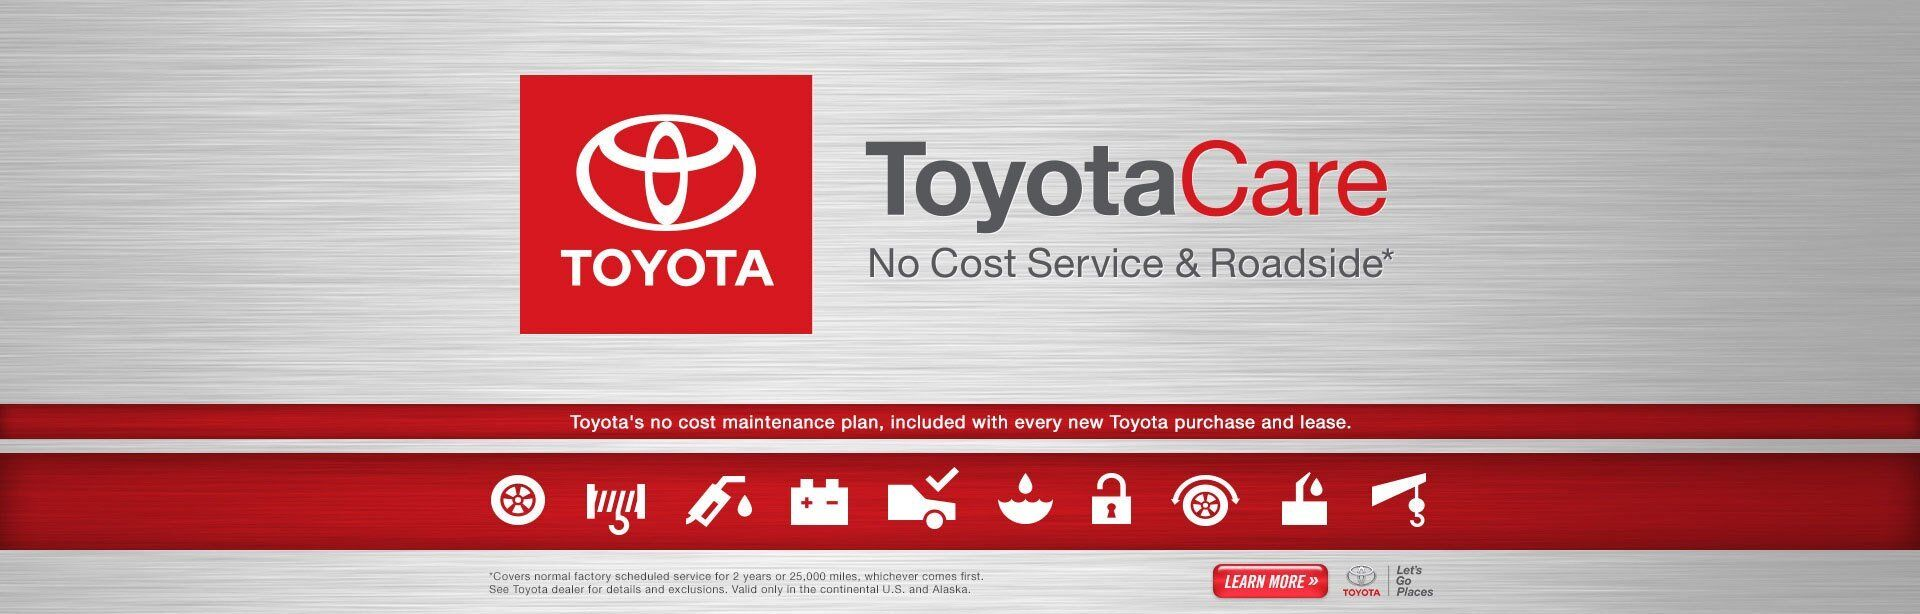 ToyotaCare at West Kendall Toyota